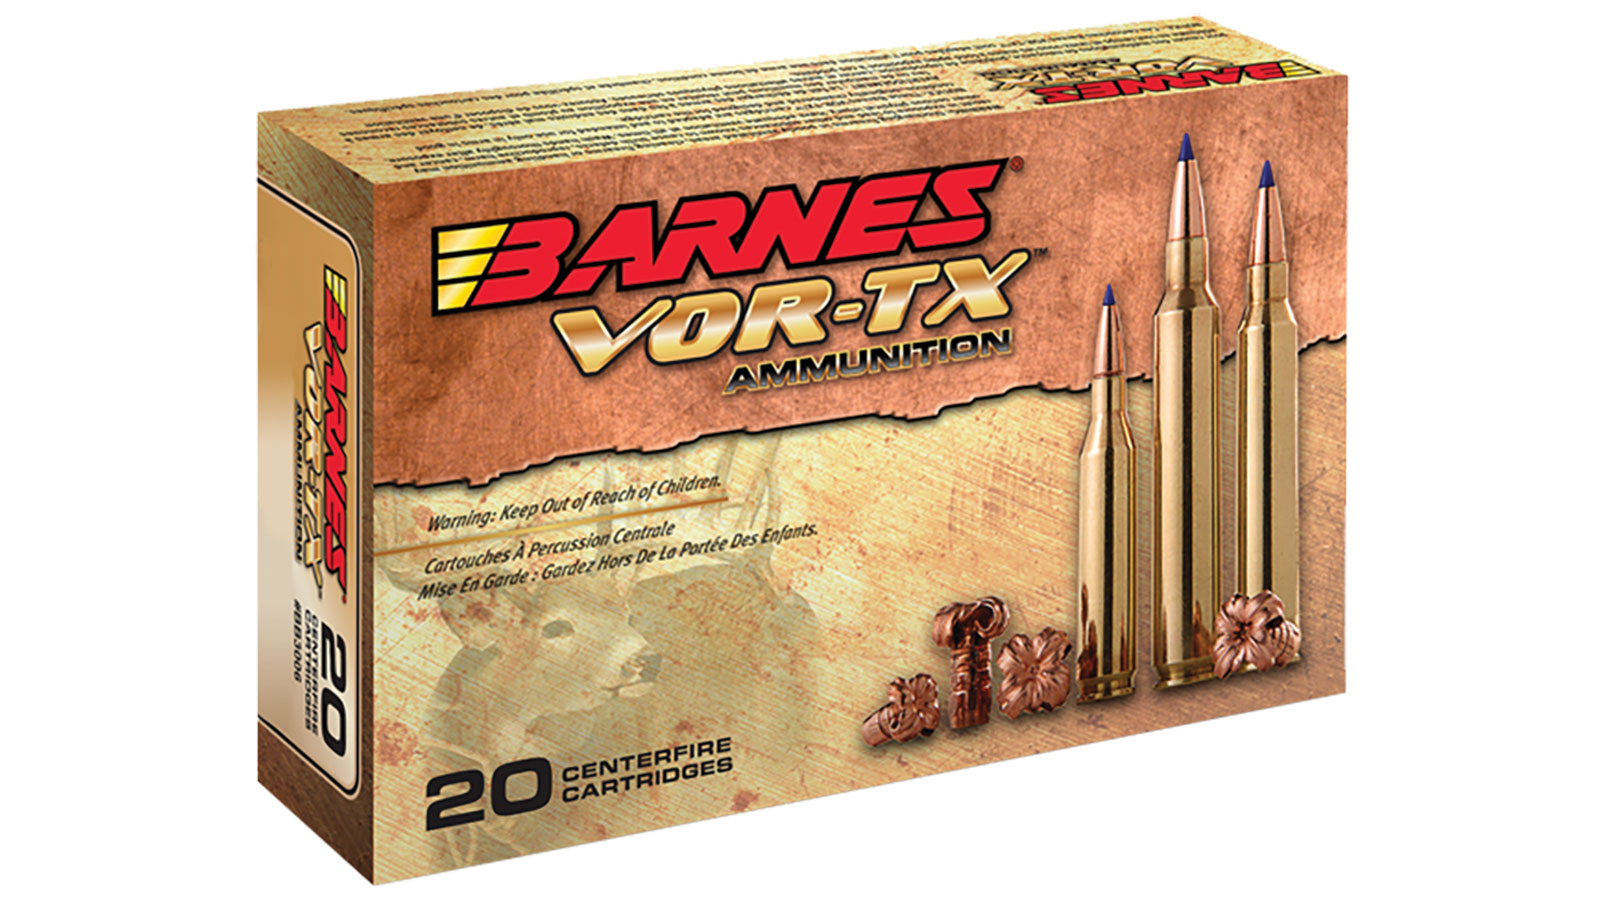 Barnes Bullets 31191 VOR-TX 223 Remington|5.56 NATO 70 GR TSX Boat Tail 20 Bx| 10 Cs